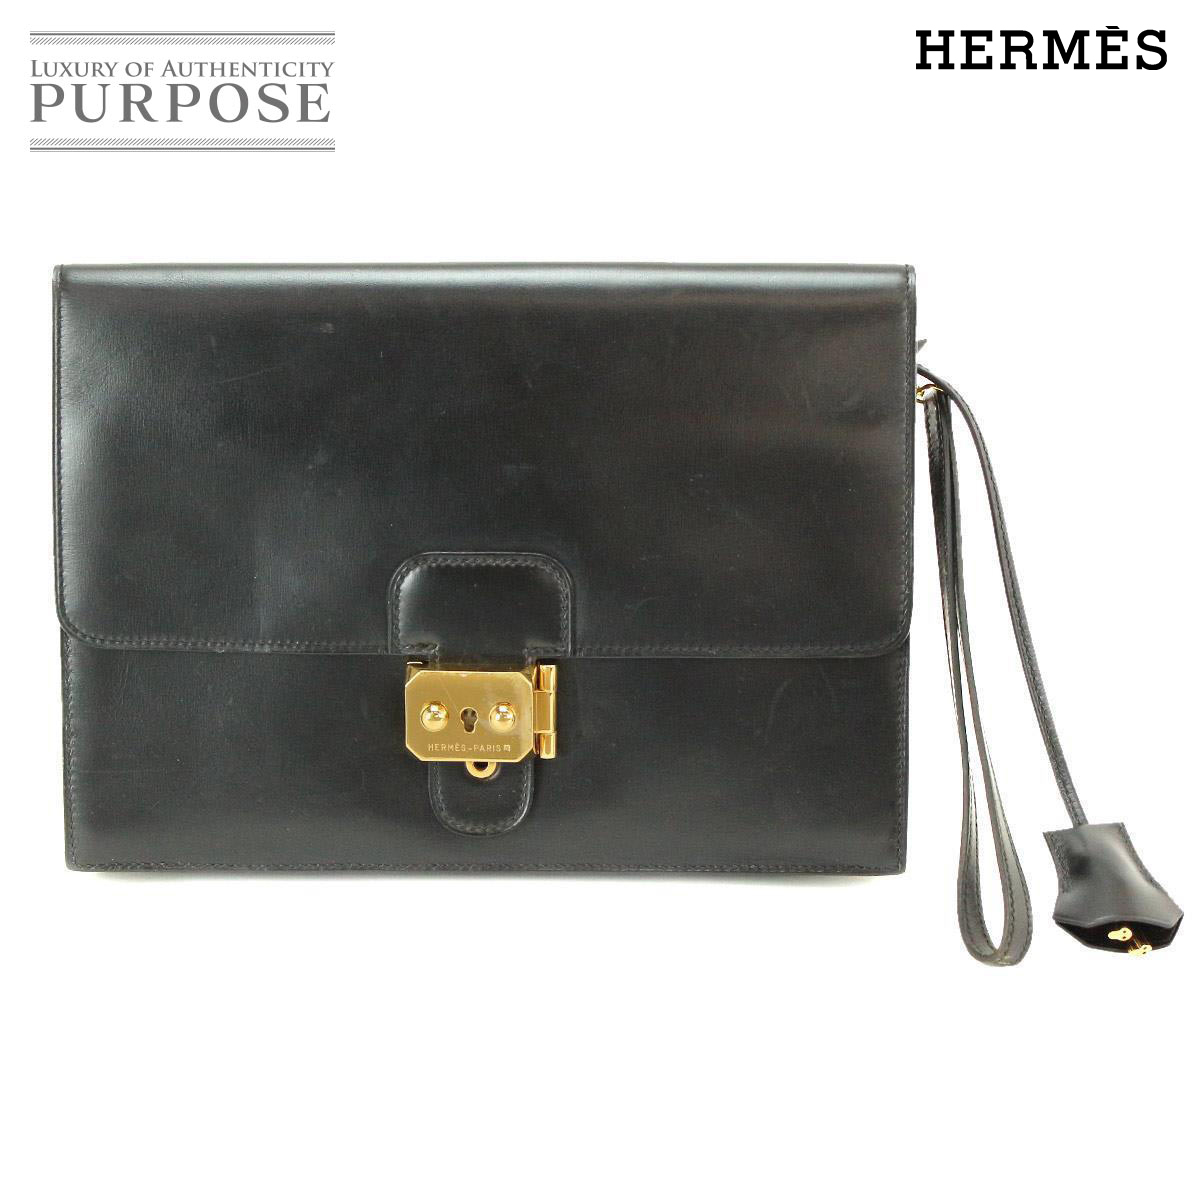 Hermes HERMES pochette jet clutch bag boxcalf leather black gold metal  fittings  used  brand 1576454d9b